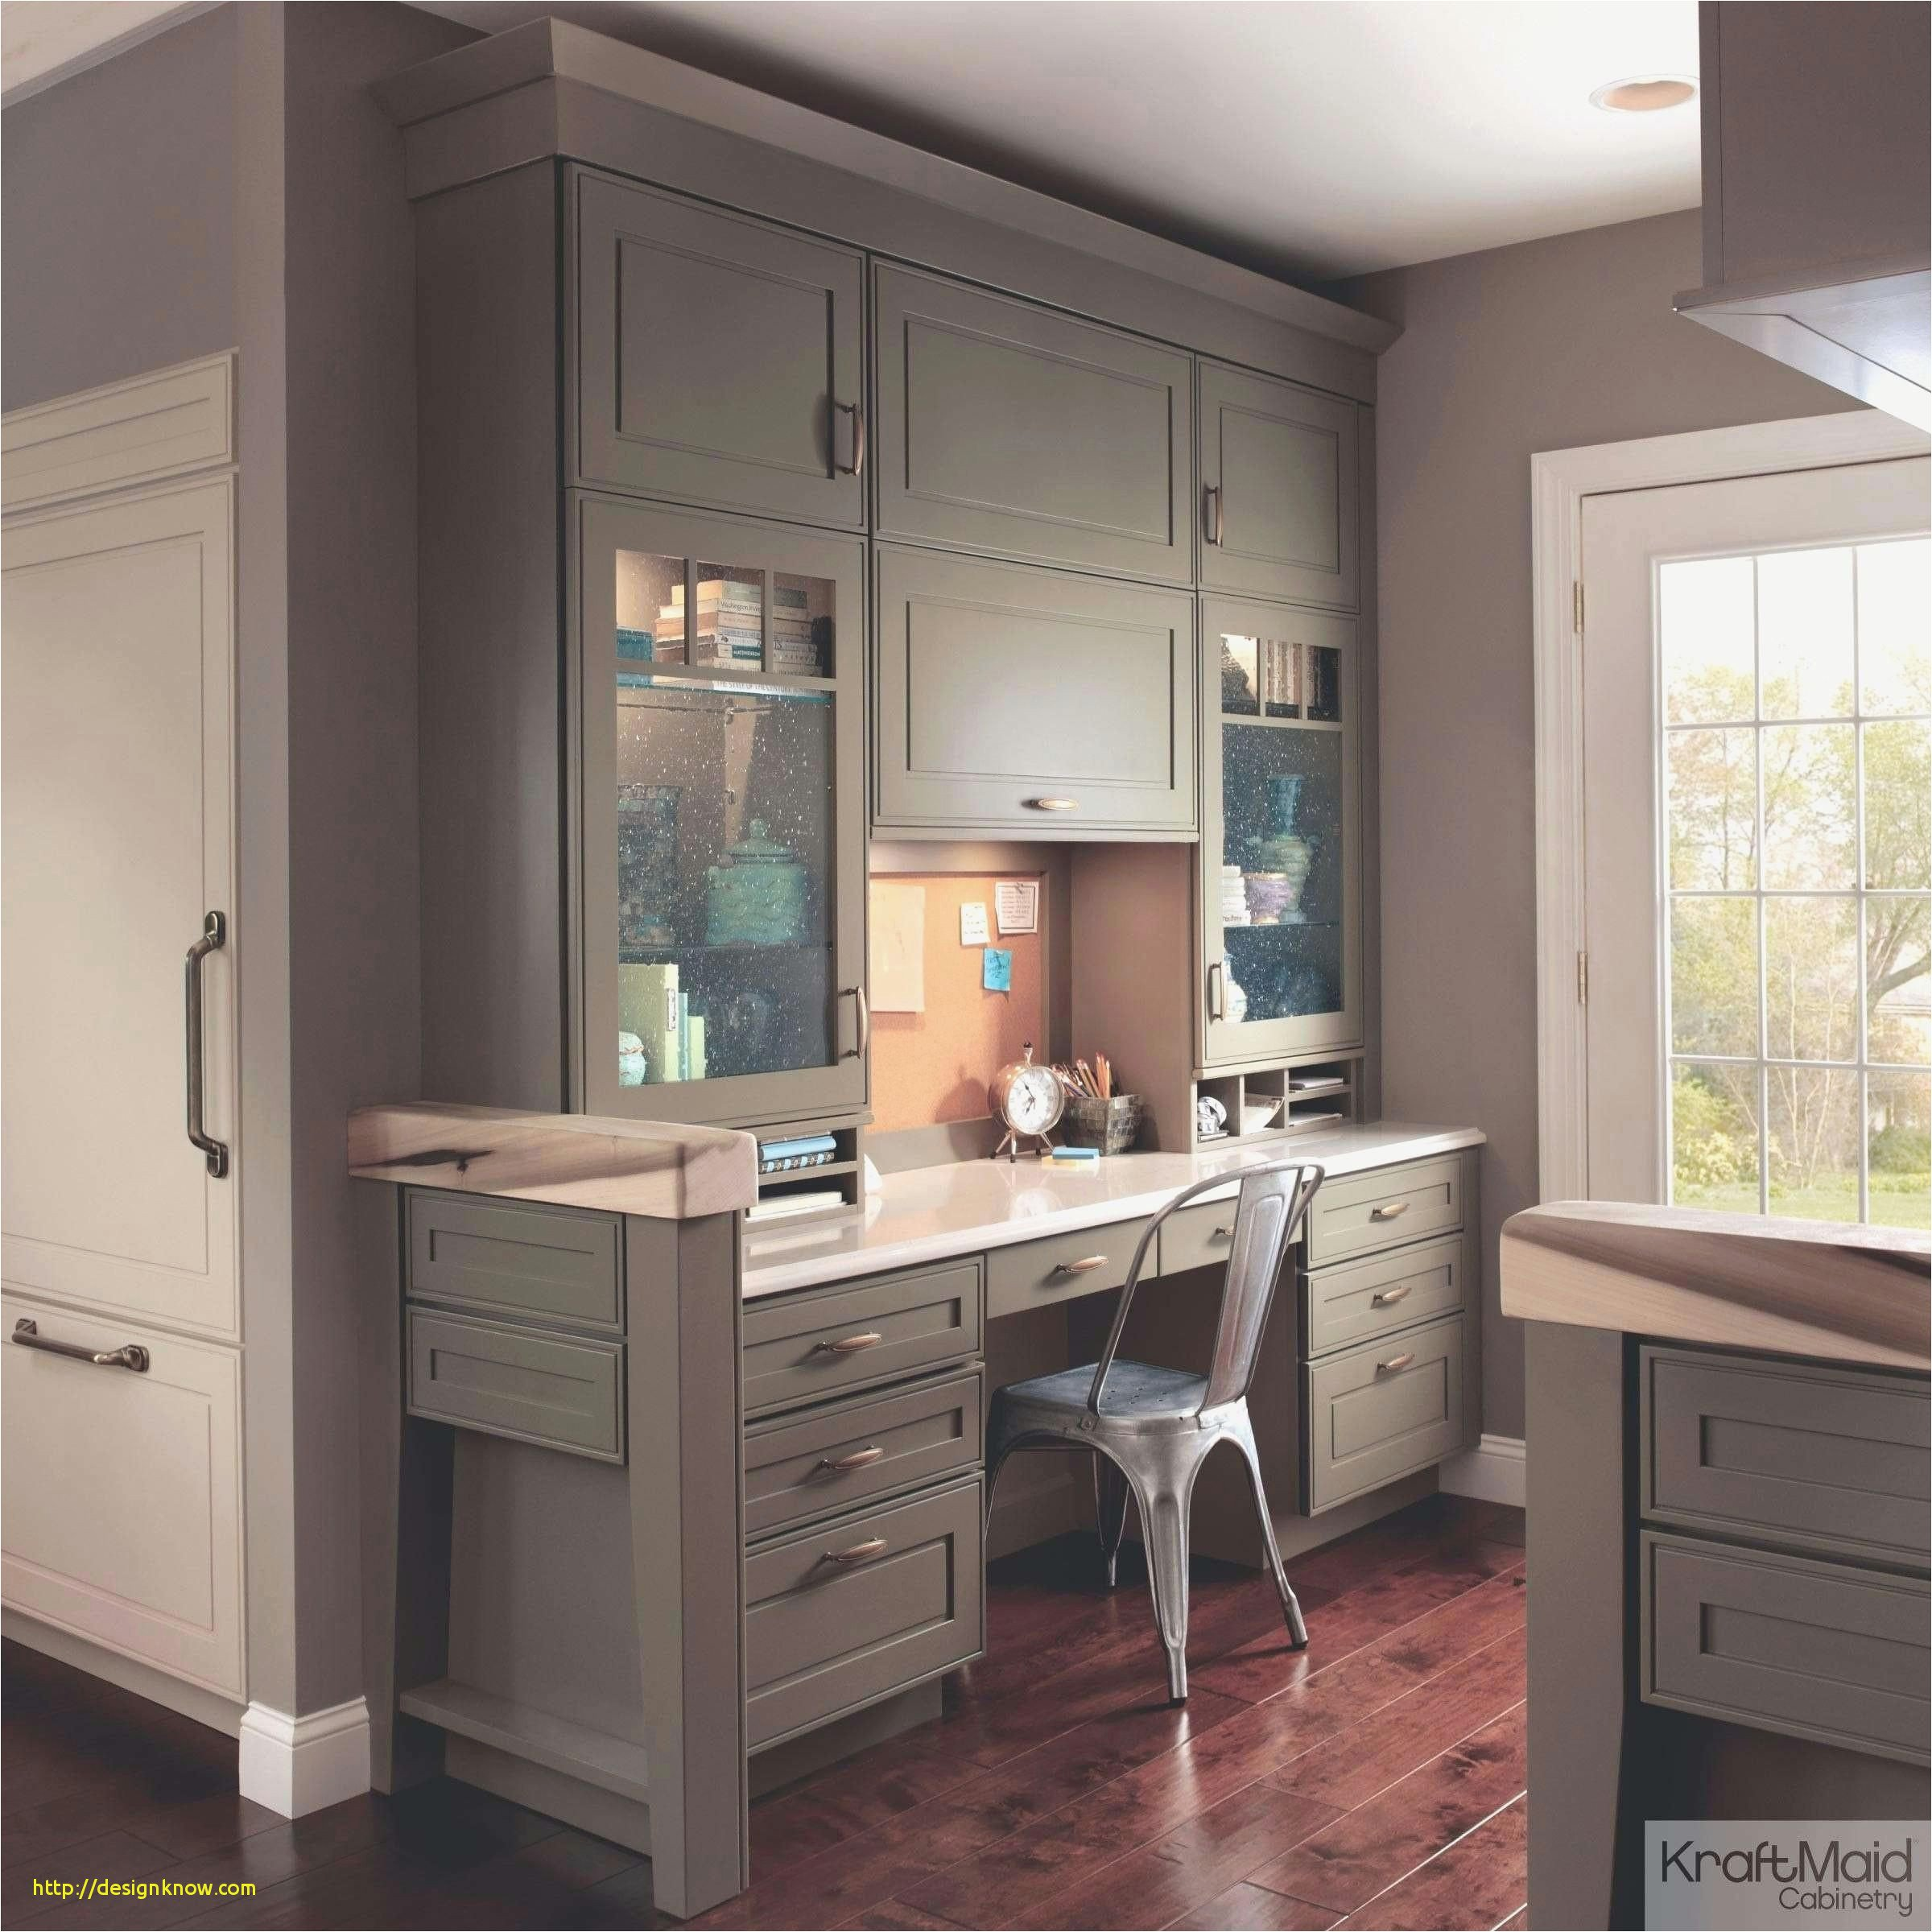 Small Bedroom Storage Ideas Beautiful Best Storage Ideas for Small Kitchens